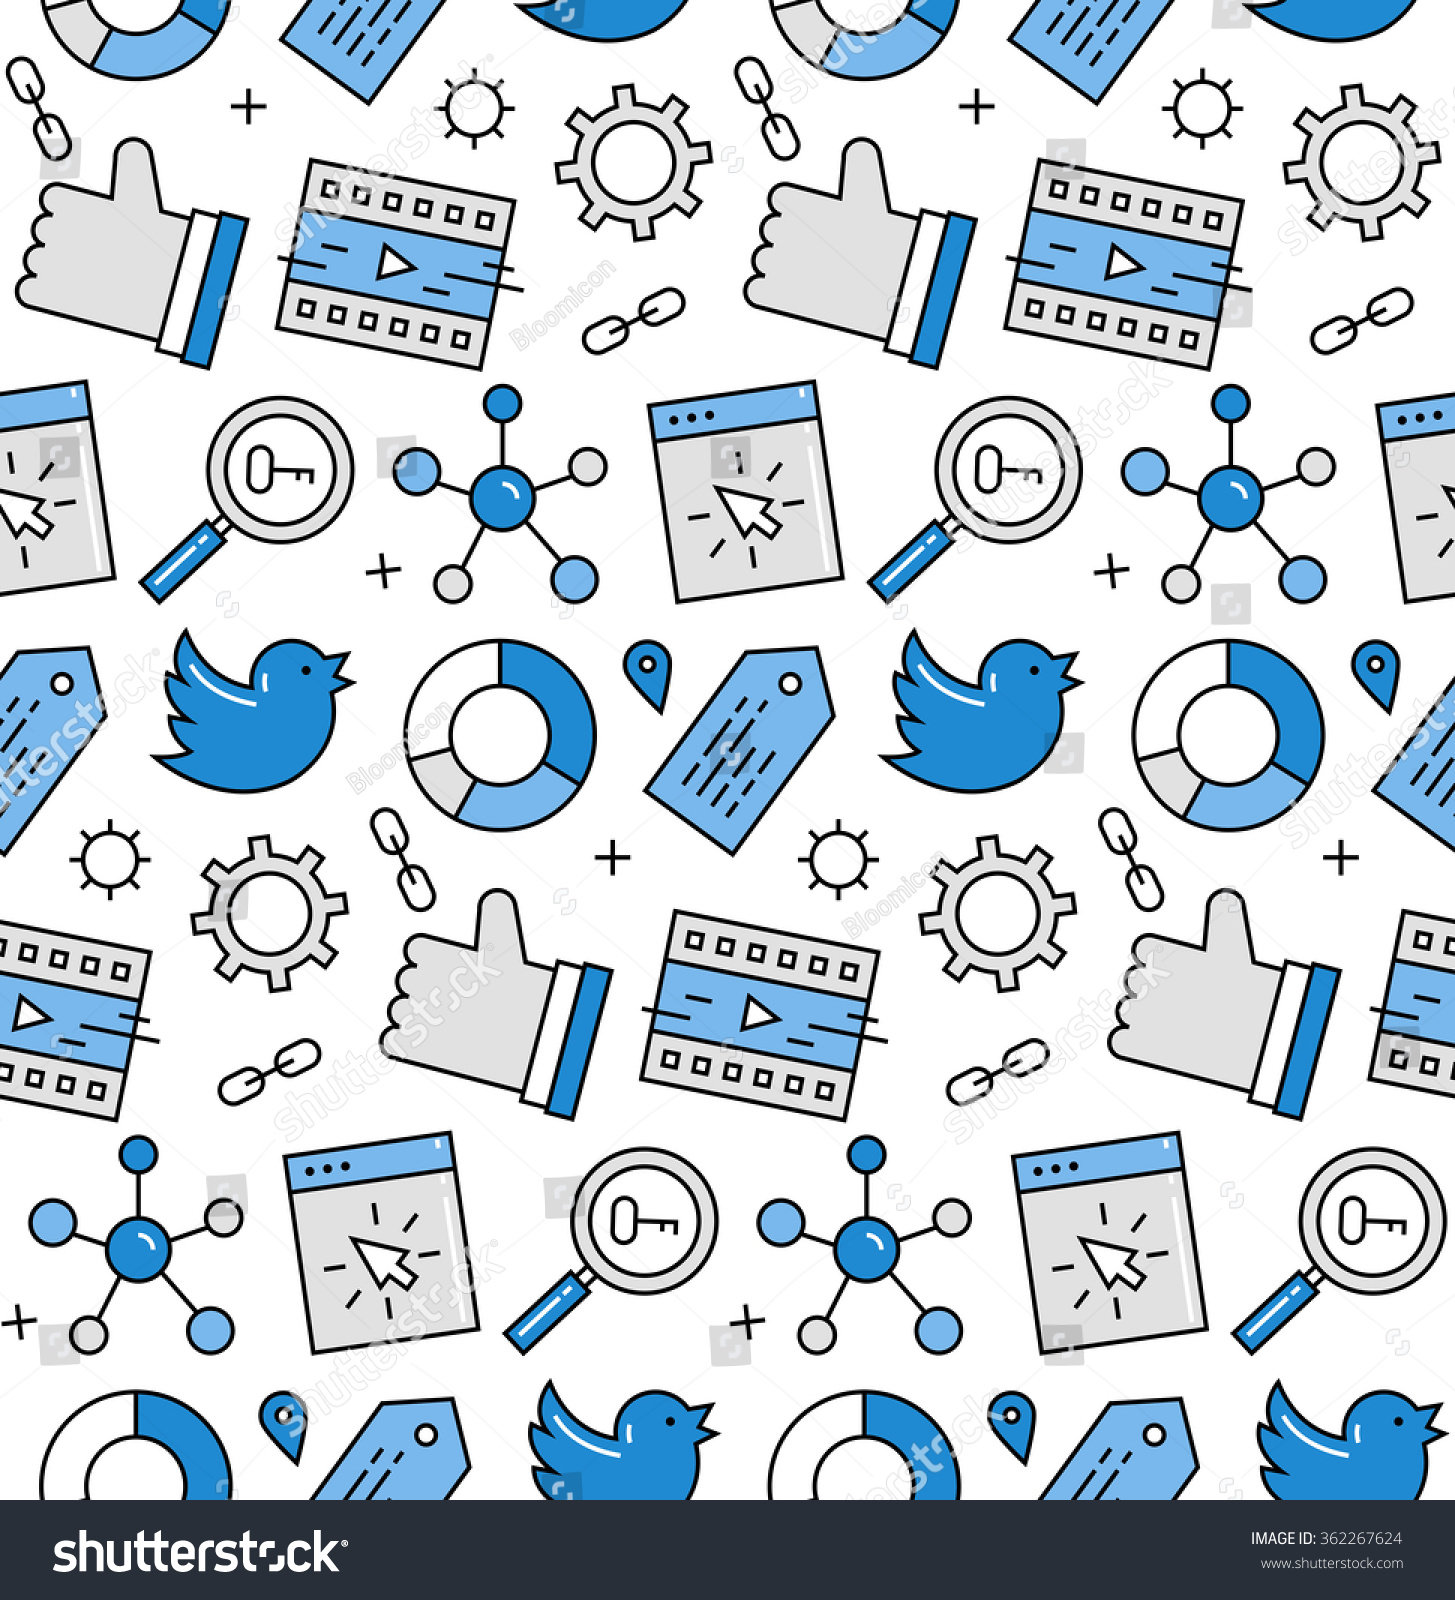 Modern Line Icons Seamless Pattern Texture Of Social Media ...